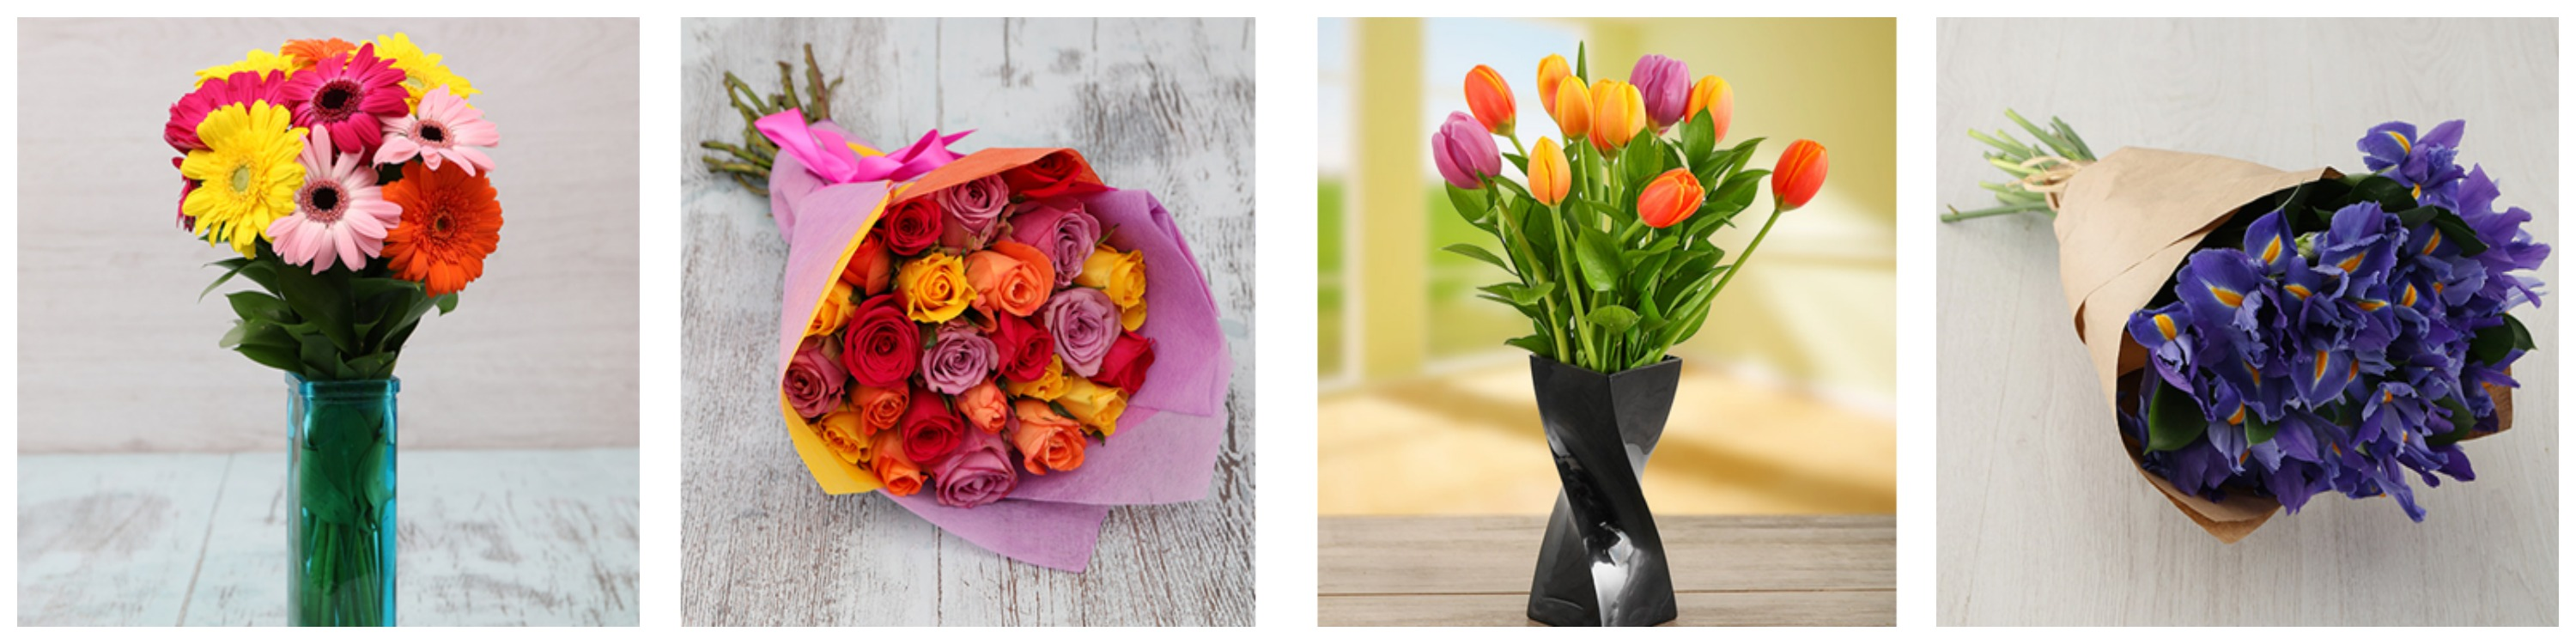 Buy Spring Flowers for Spring Day